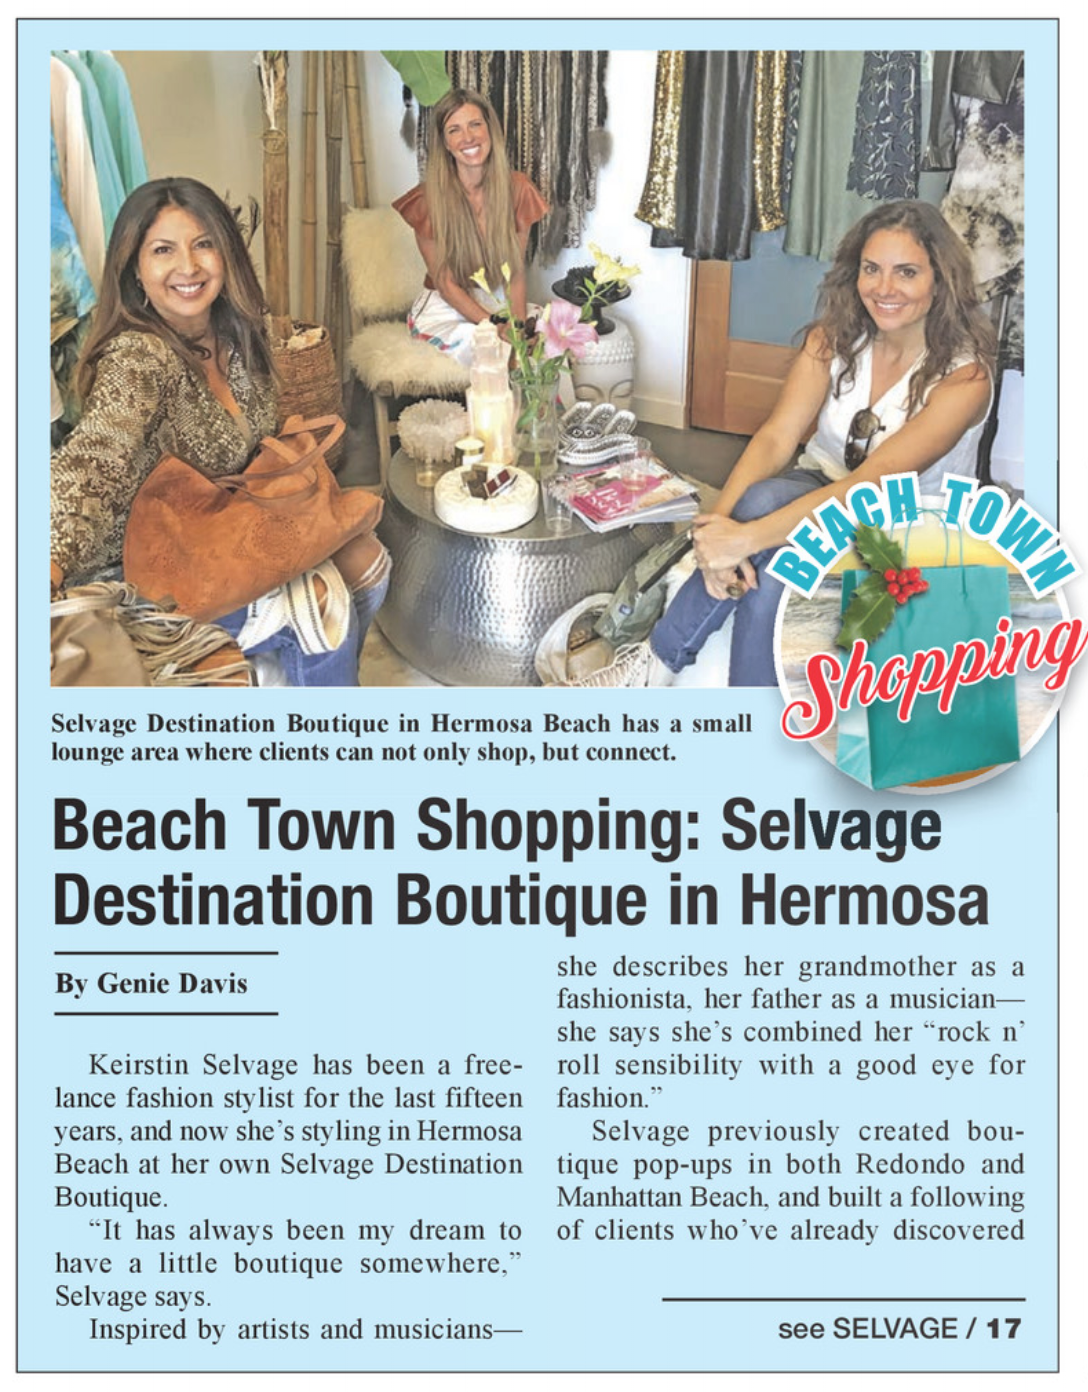 Hermosa Beach Town Shopping: Selvage Styling Destination Boutique Vintage Clothing